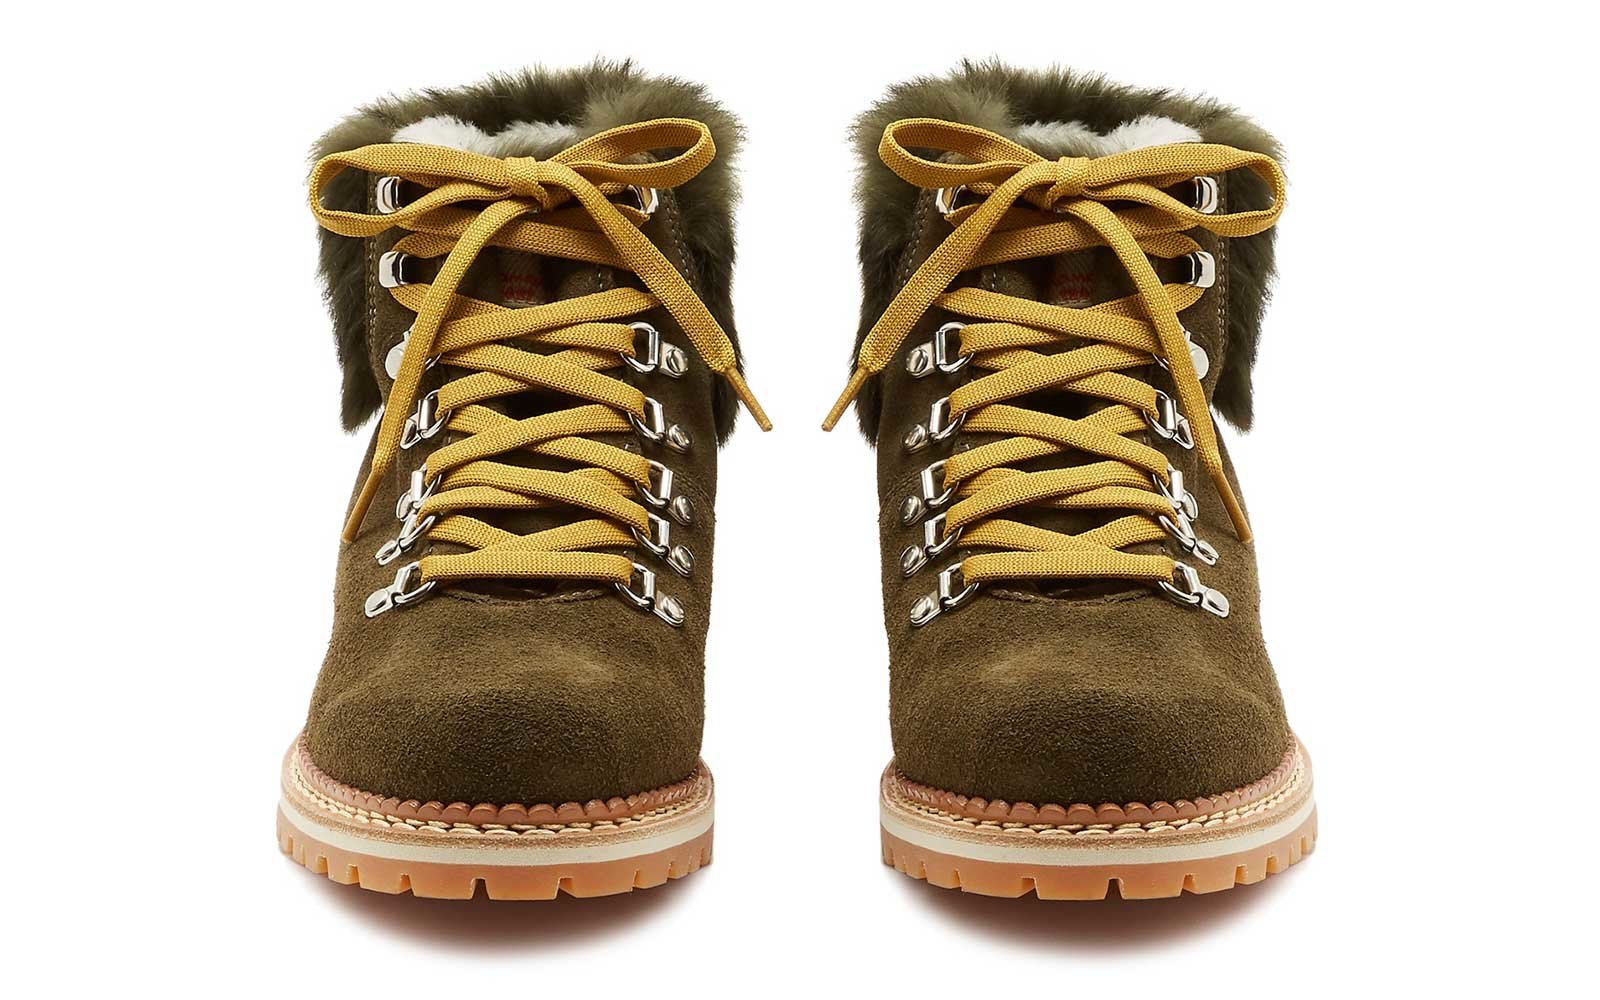 Fur Trimmed Winter Boots